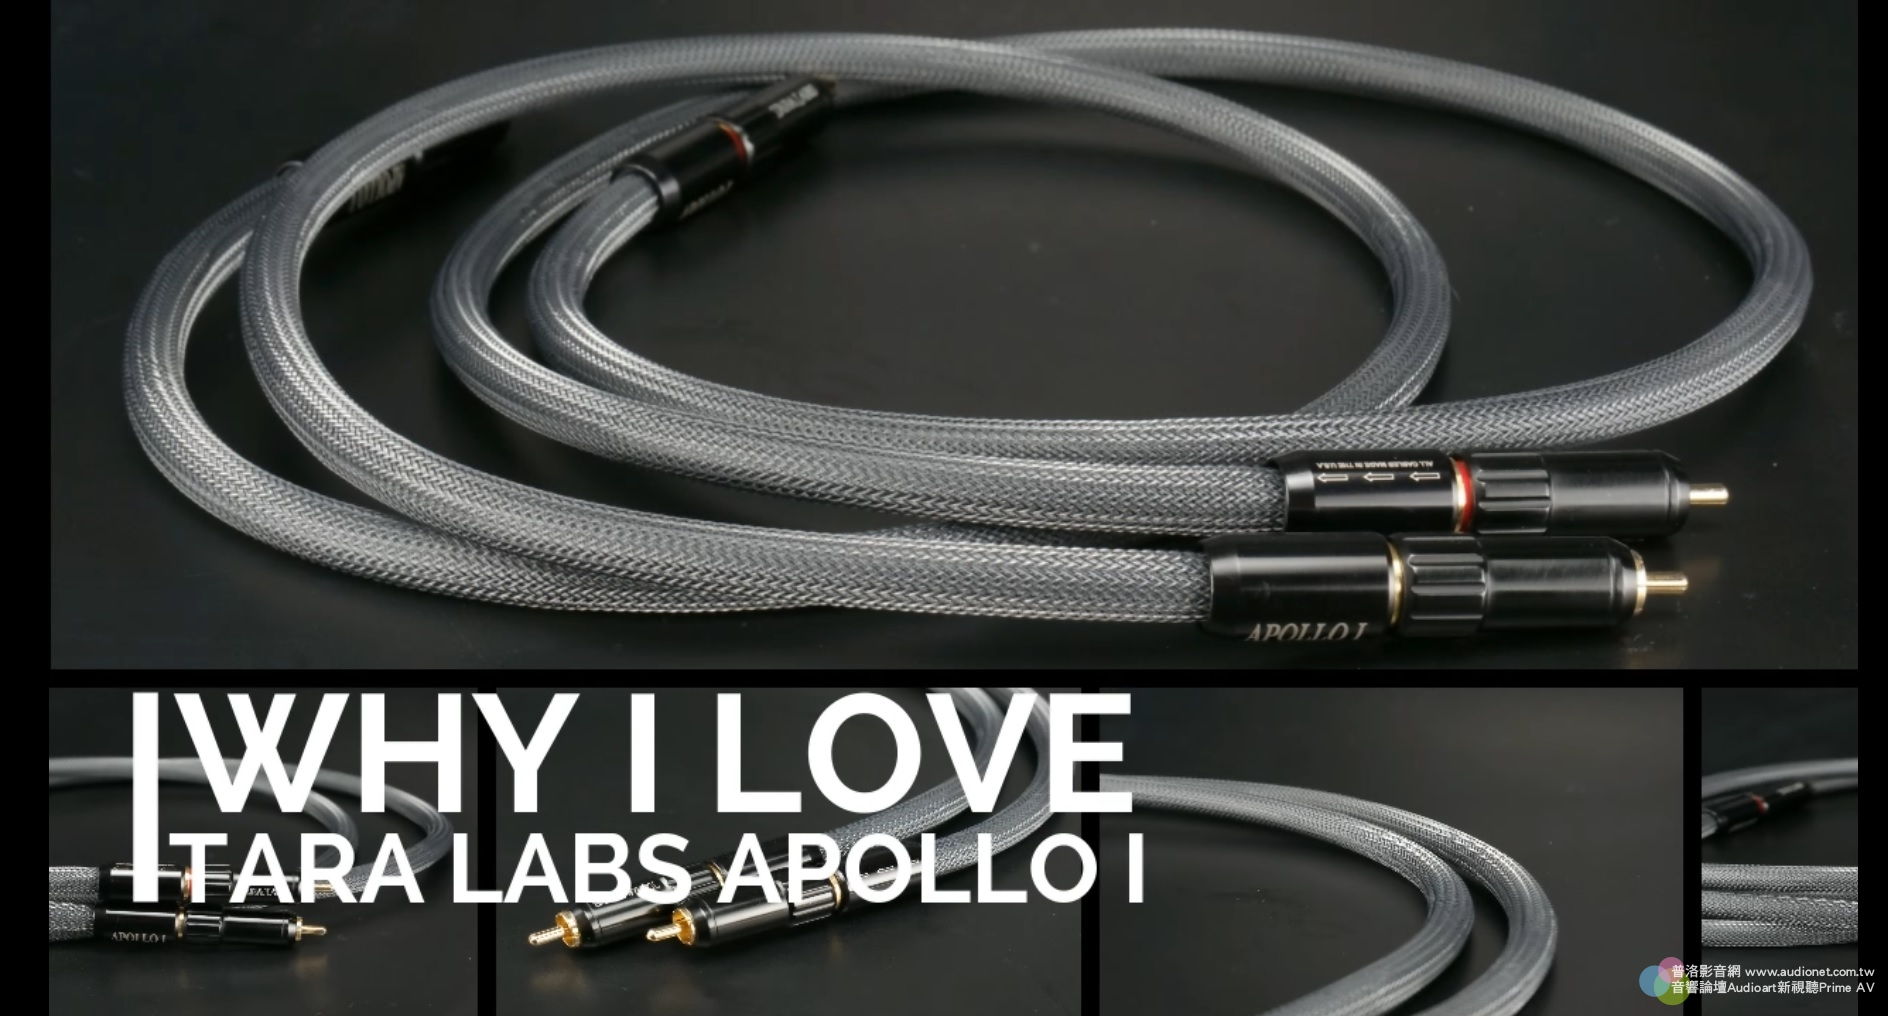 Why I Love - TARA Labs Apollo系列線材(Part 02)